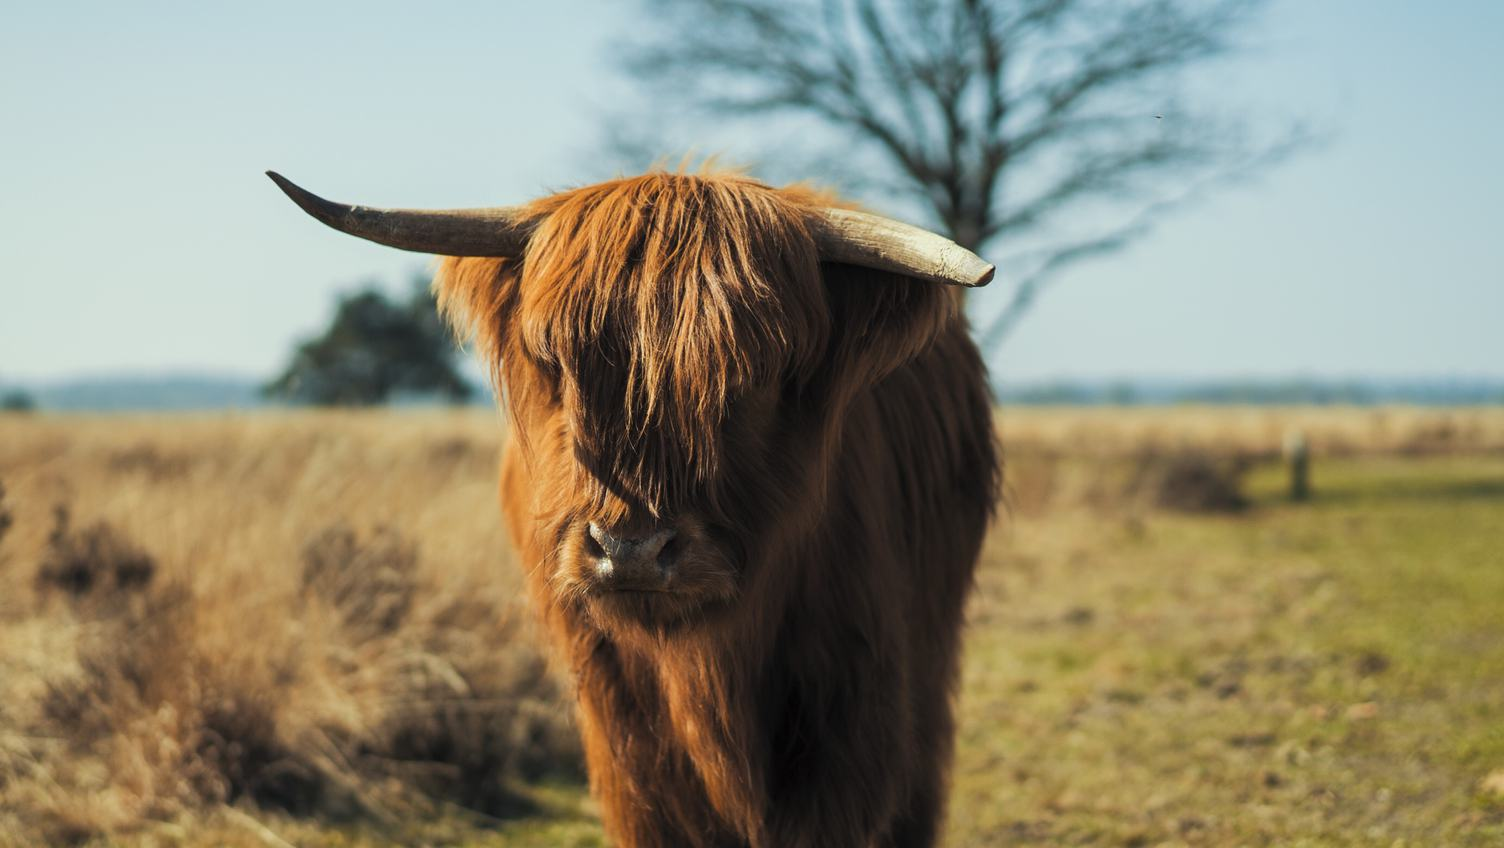 Scottish Highland Cow with Broken Horn in a Field